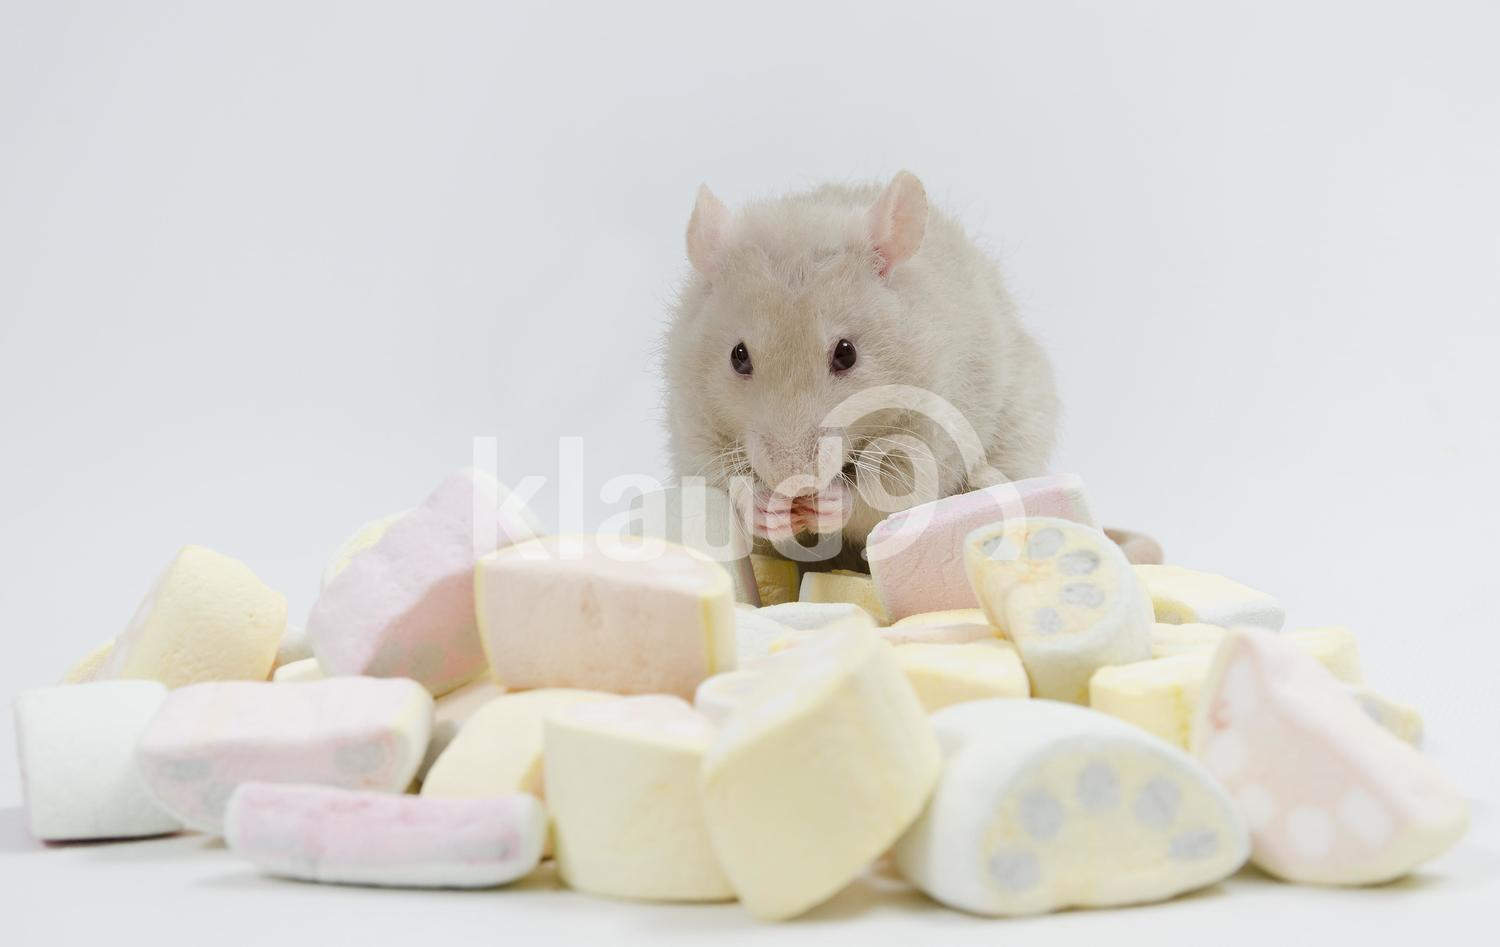 Cute Rat with marmalade.